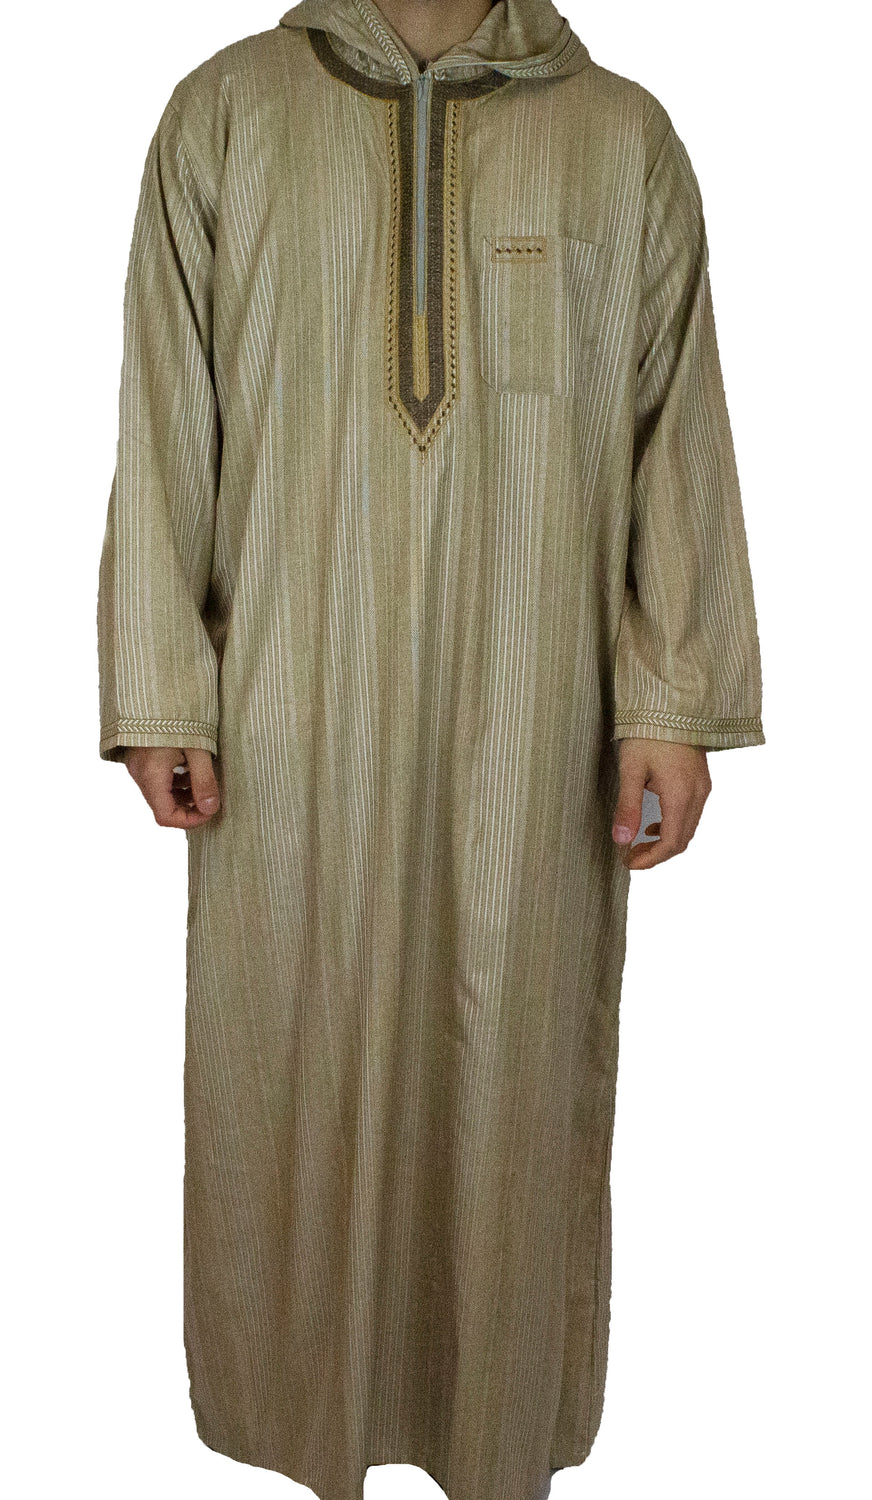 Men's Hooded Thobe - Light Brown Stripes